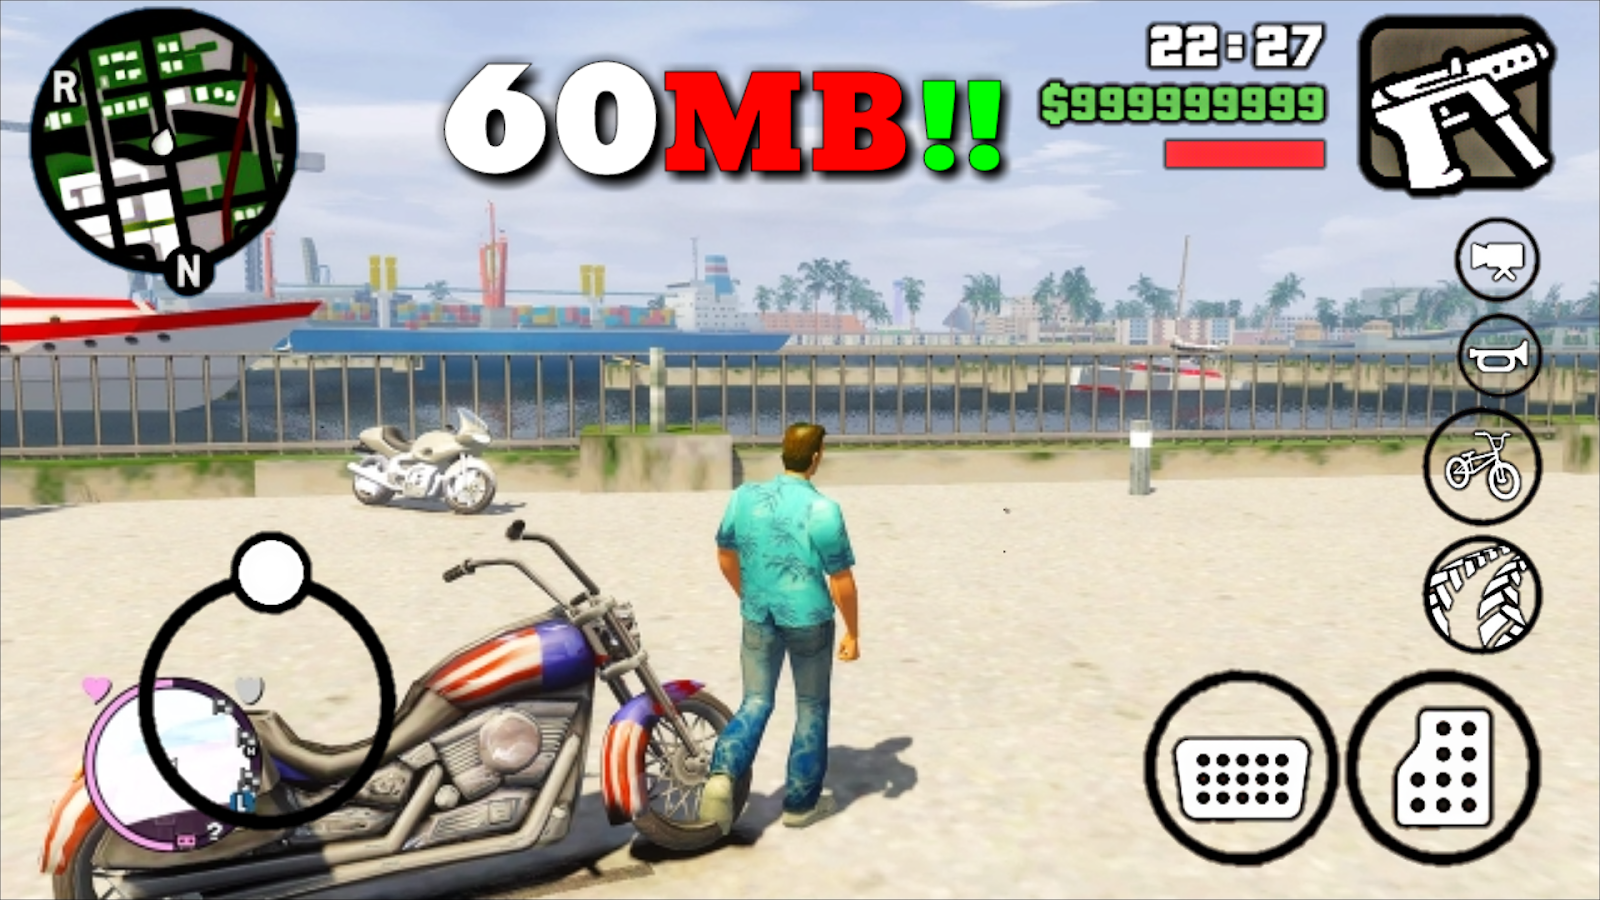 gta vice city game download for android uptodown